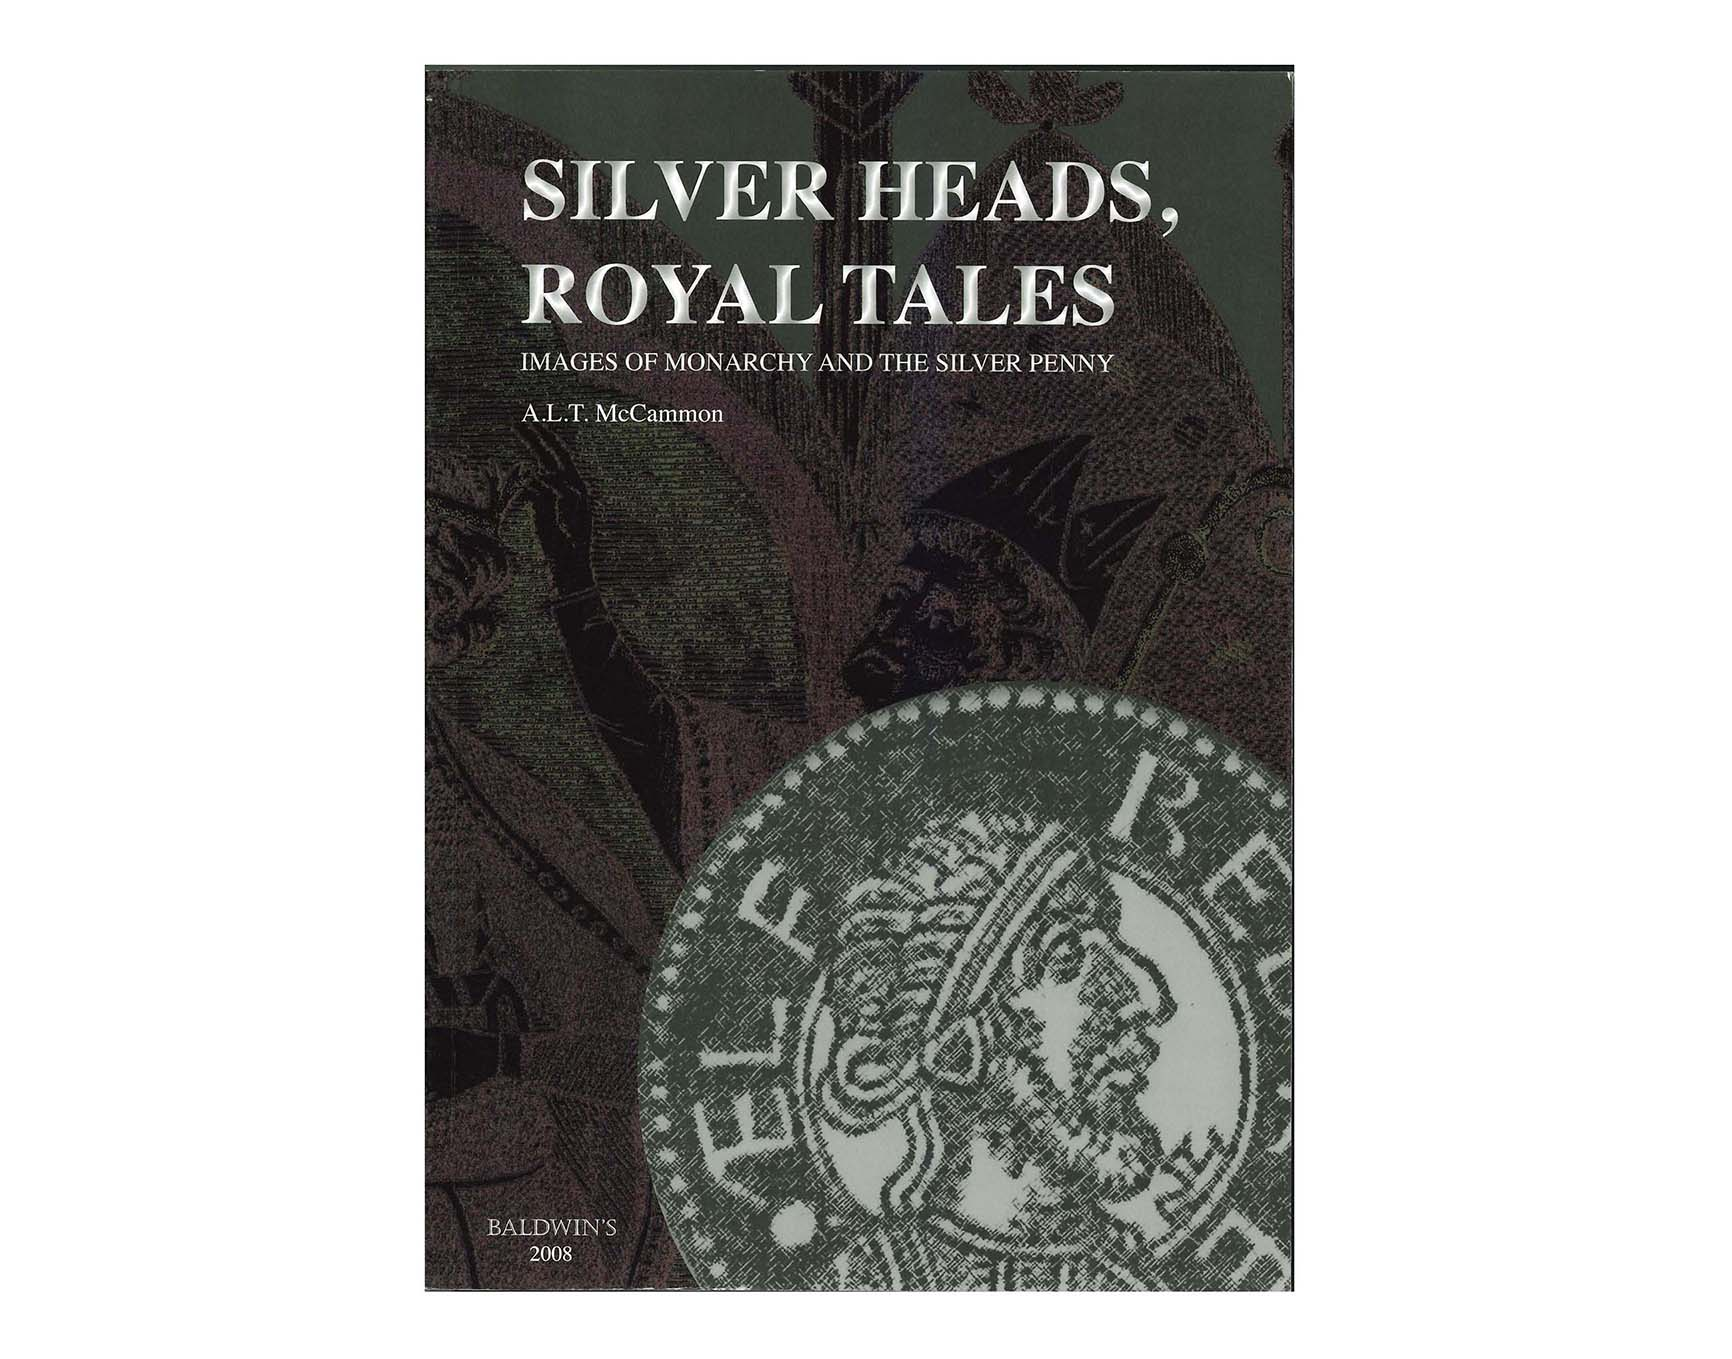 Silver Heads, Royal Tales